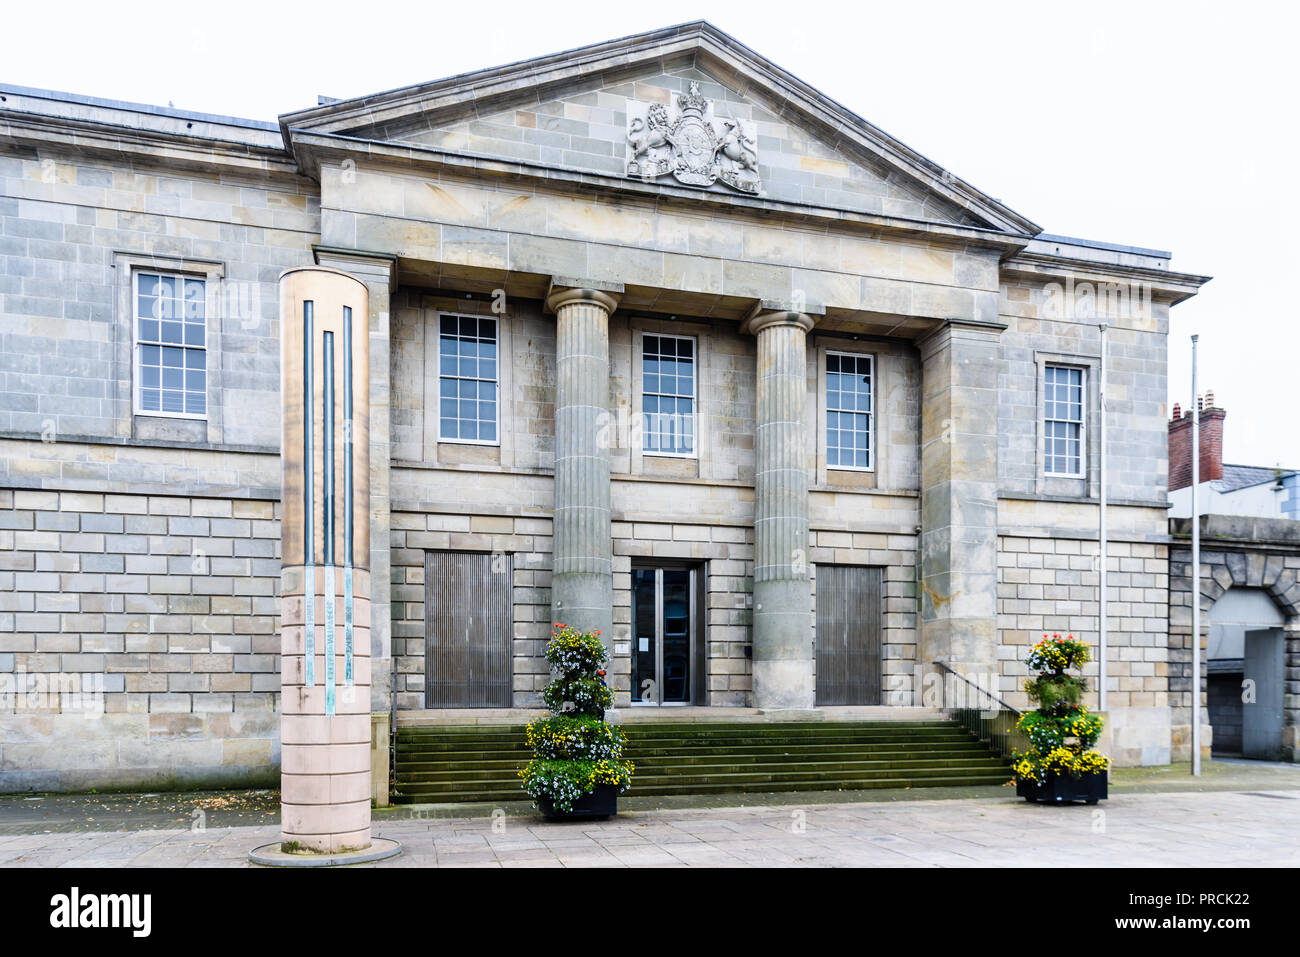 Monaghan Court House, Monaghan Town, County Cavan, Ireland. - Stock Image